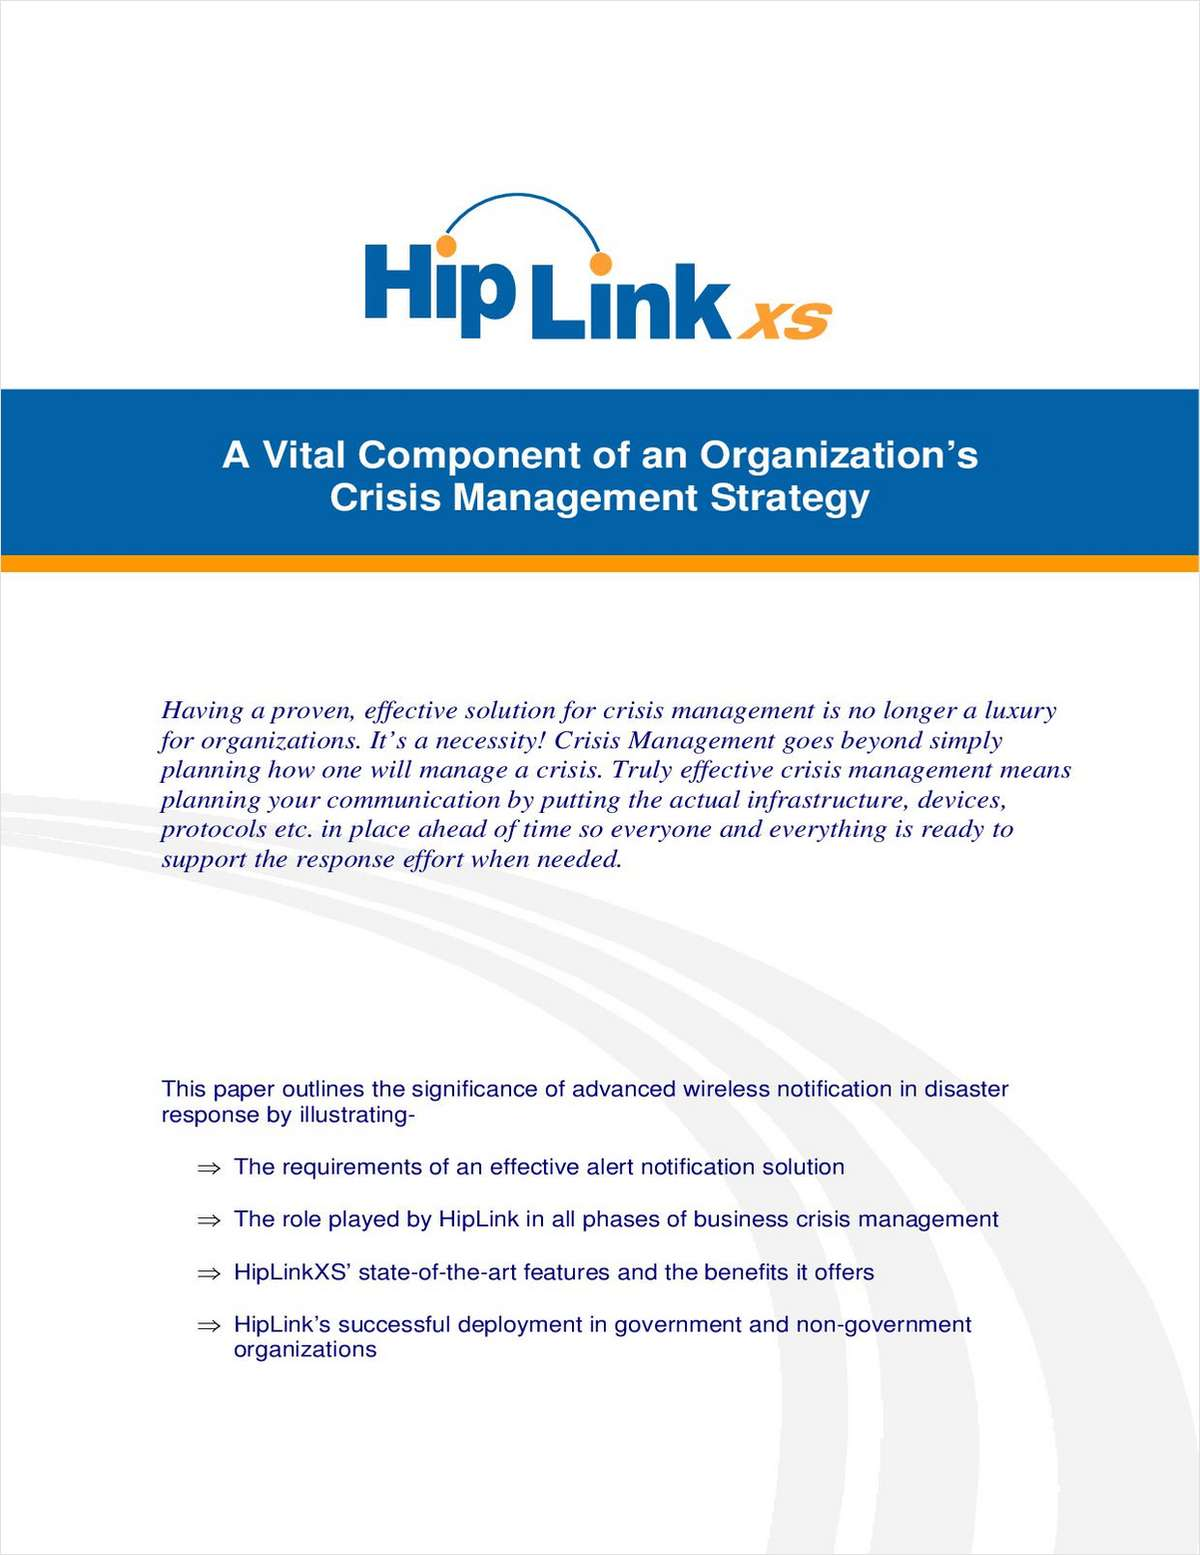 HipLinkXS® - A Vital Component of an Organization's Crisis Management Strategy